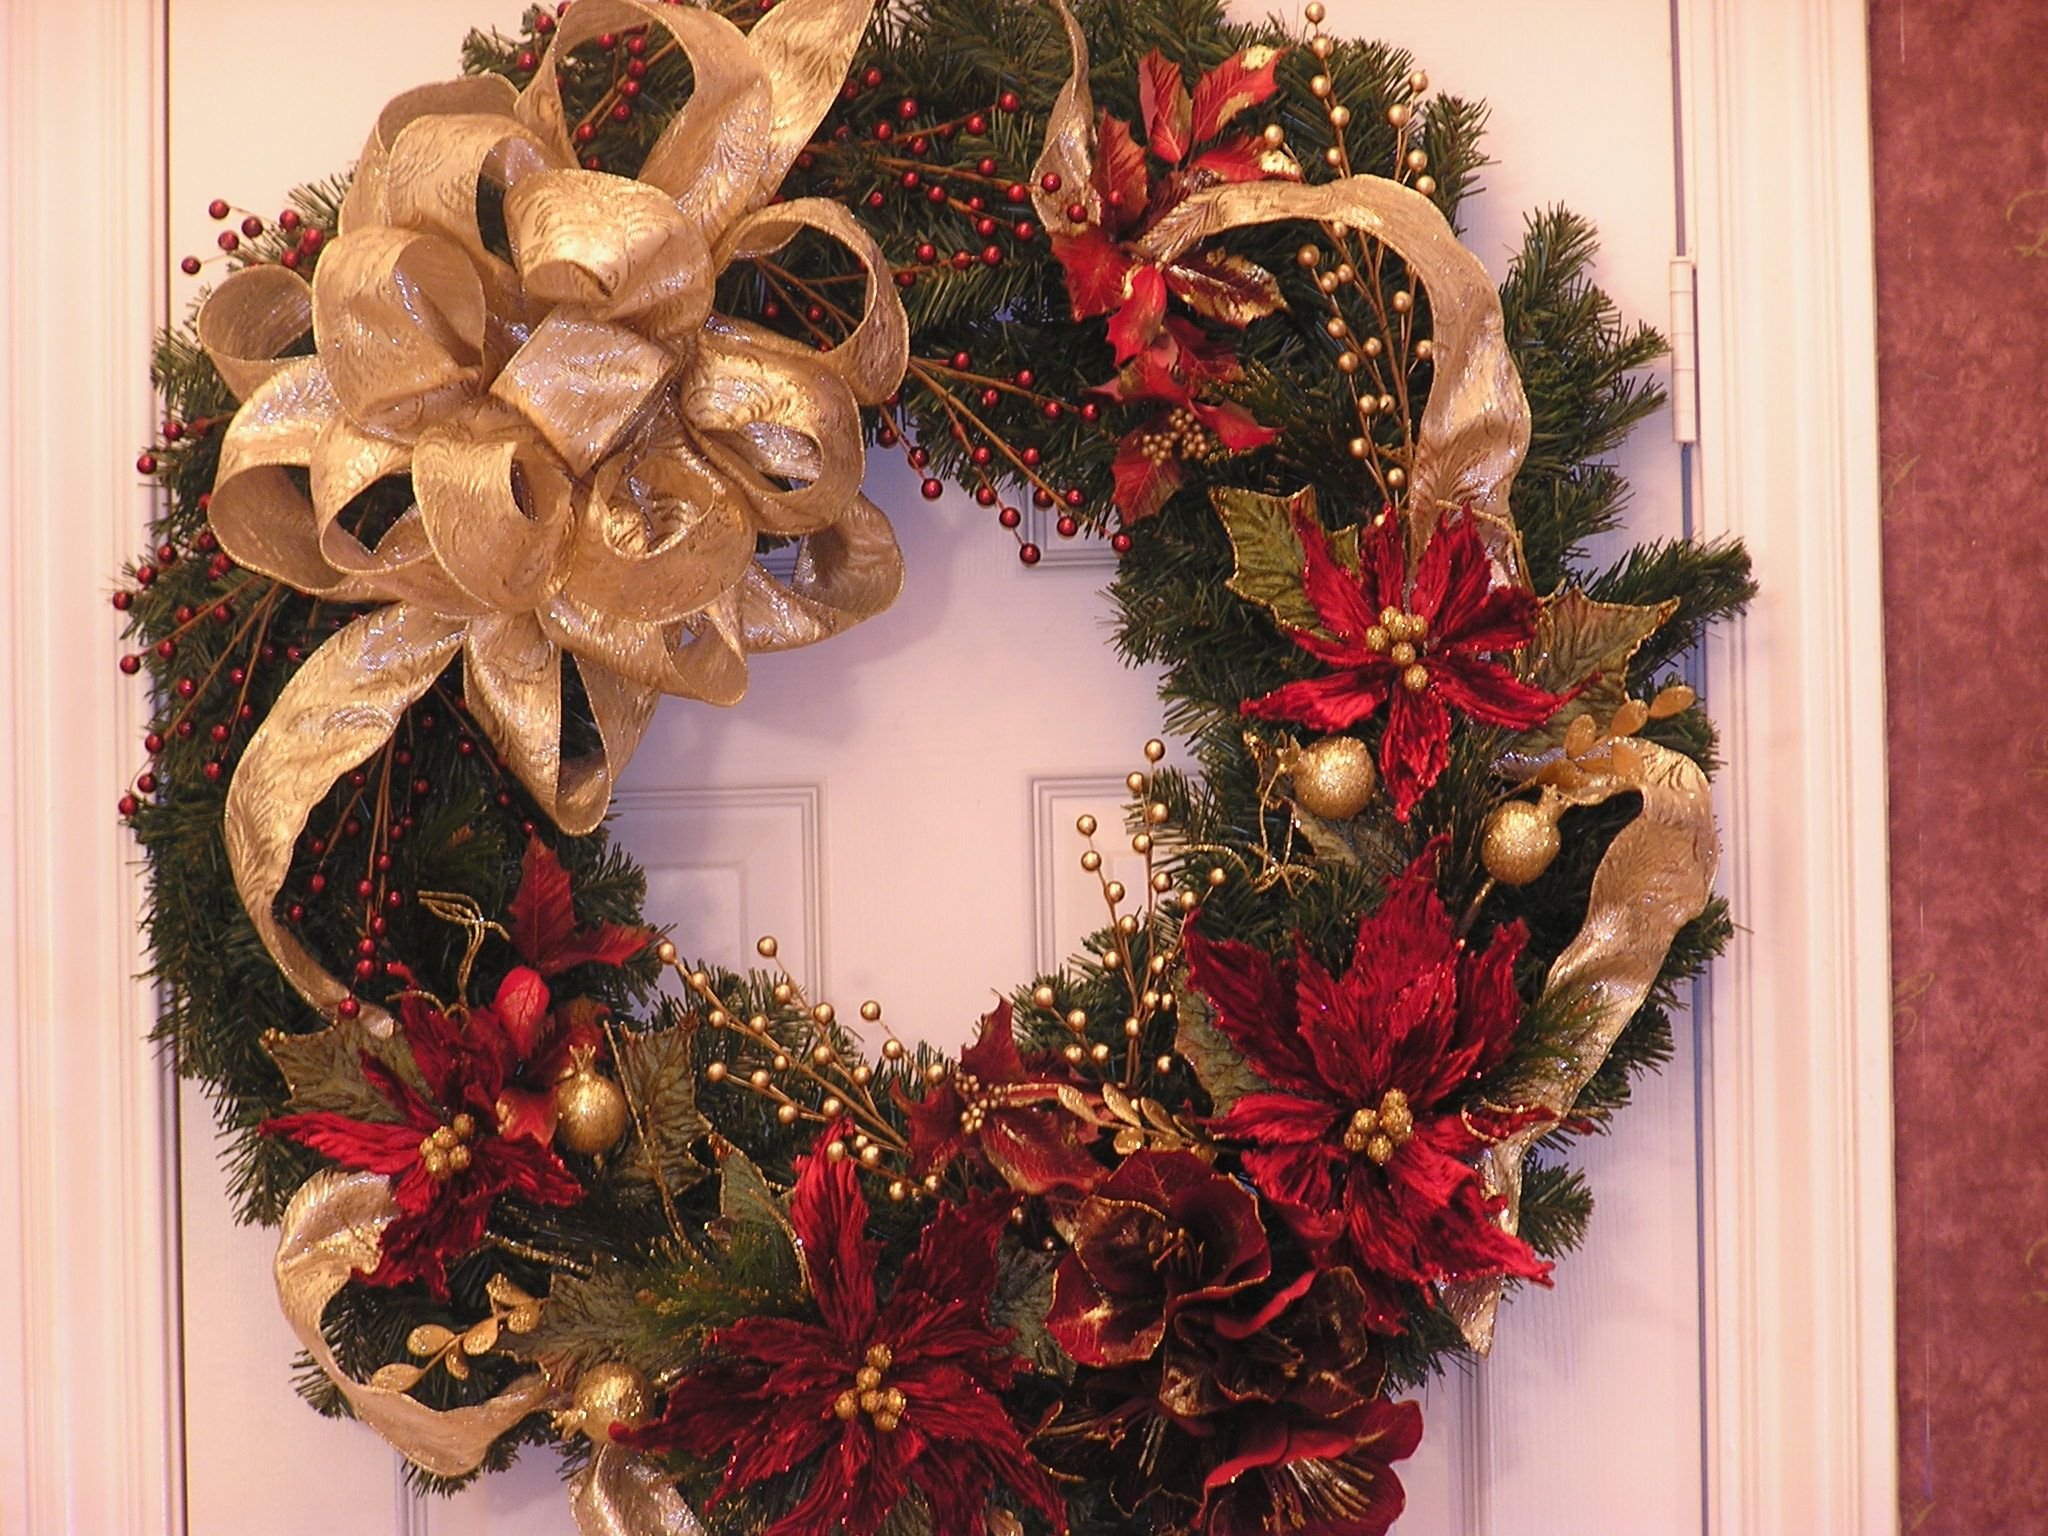 A poinsettia and pine cone wreath would look wonderfully